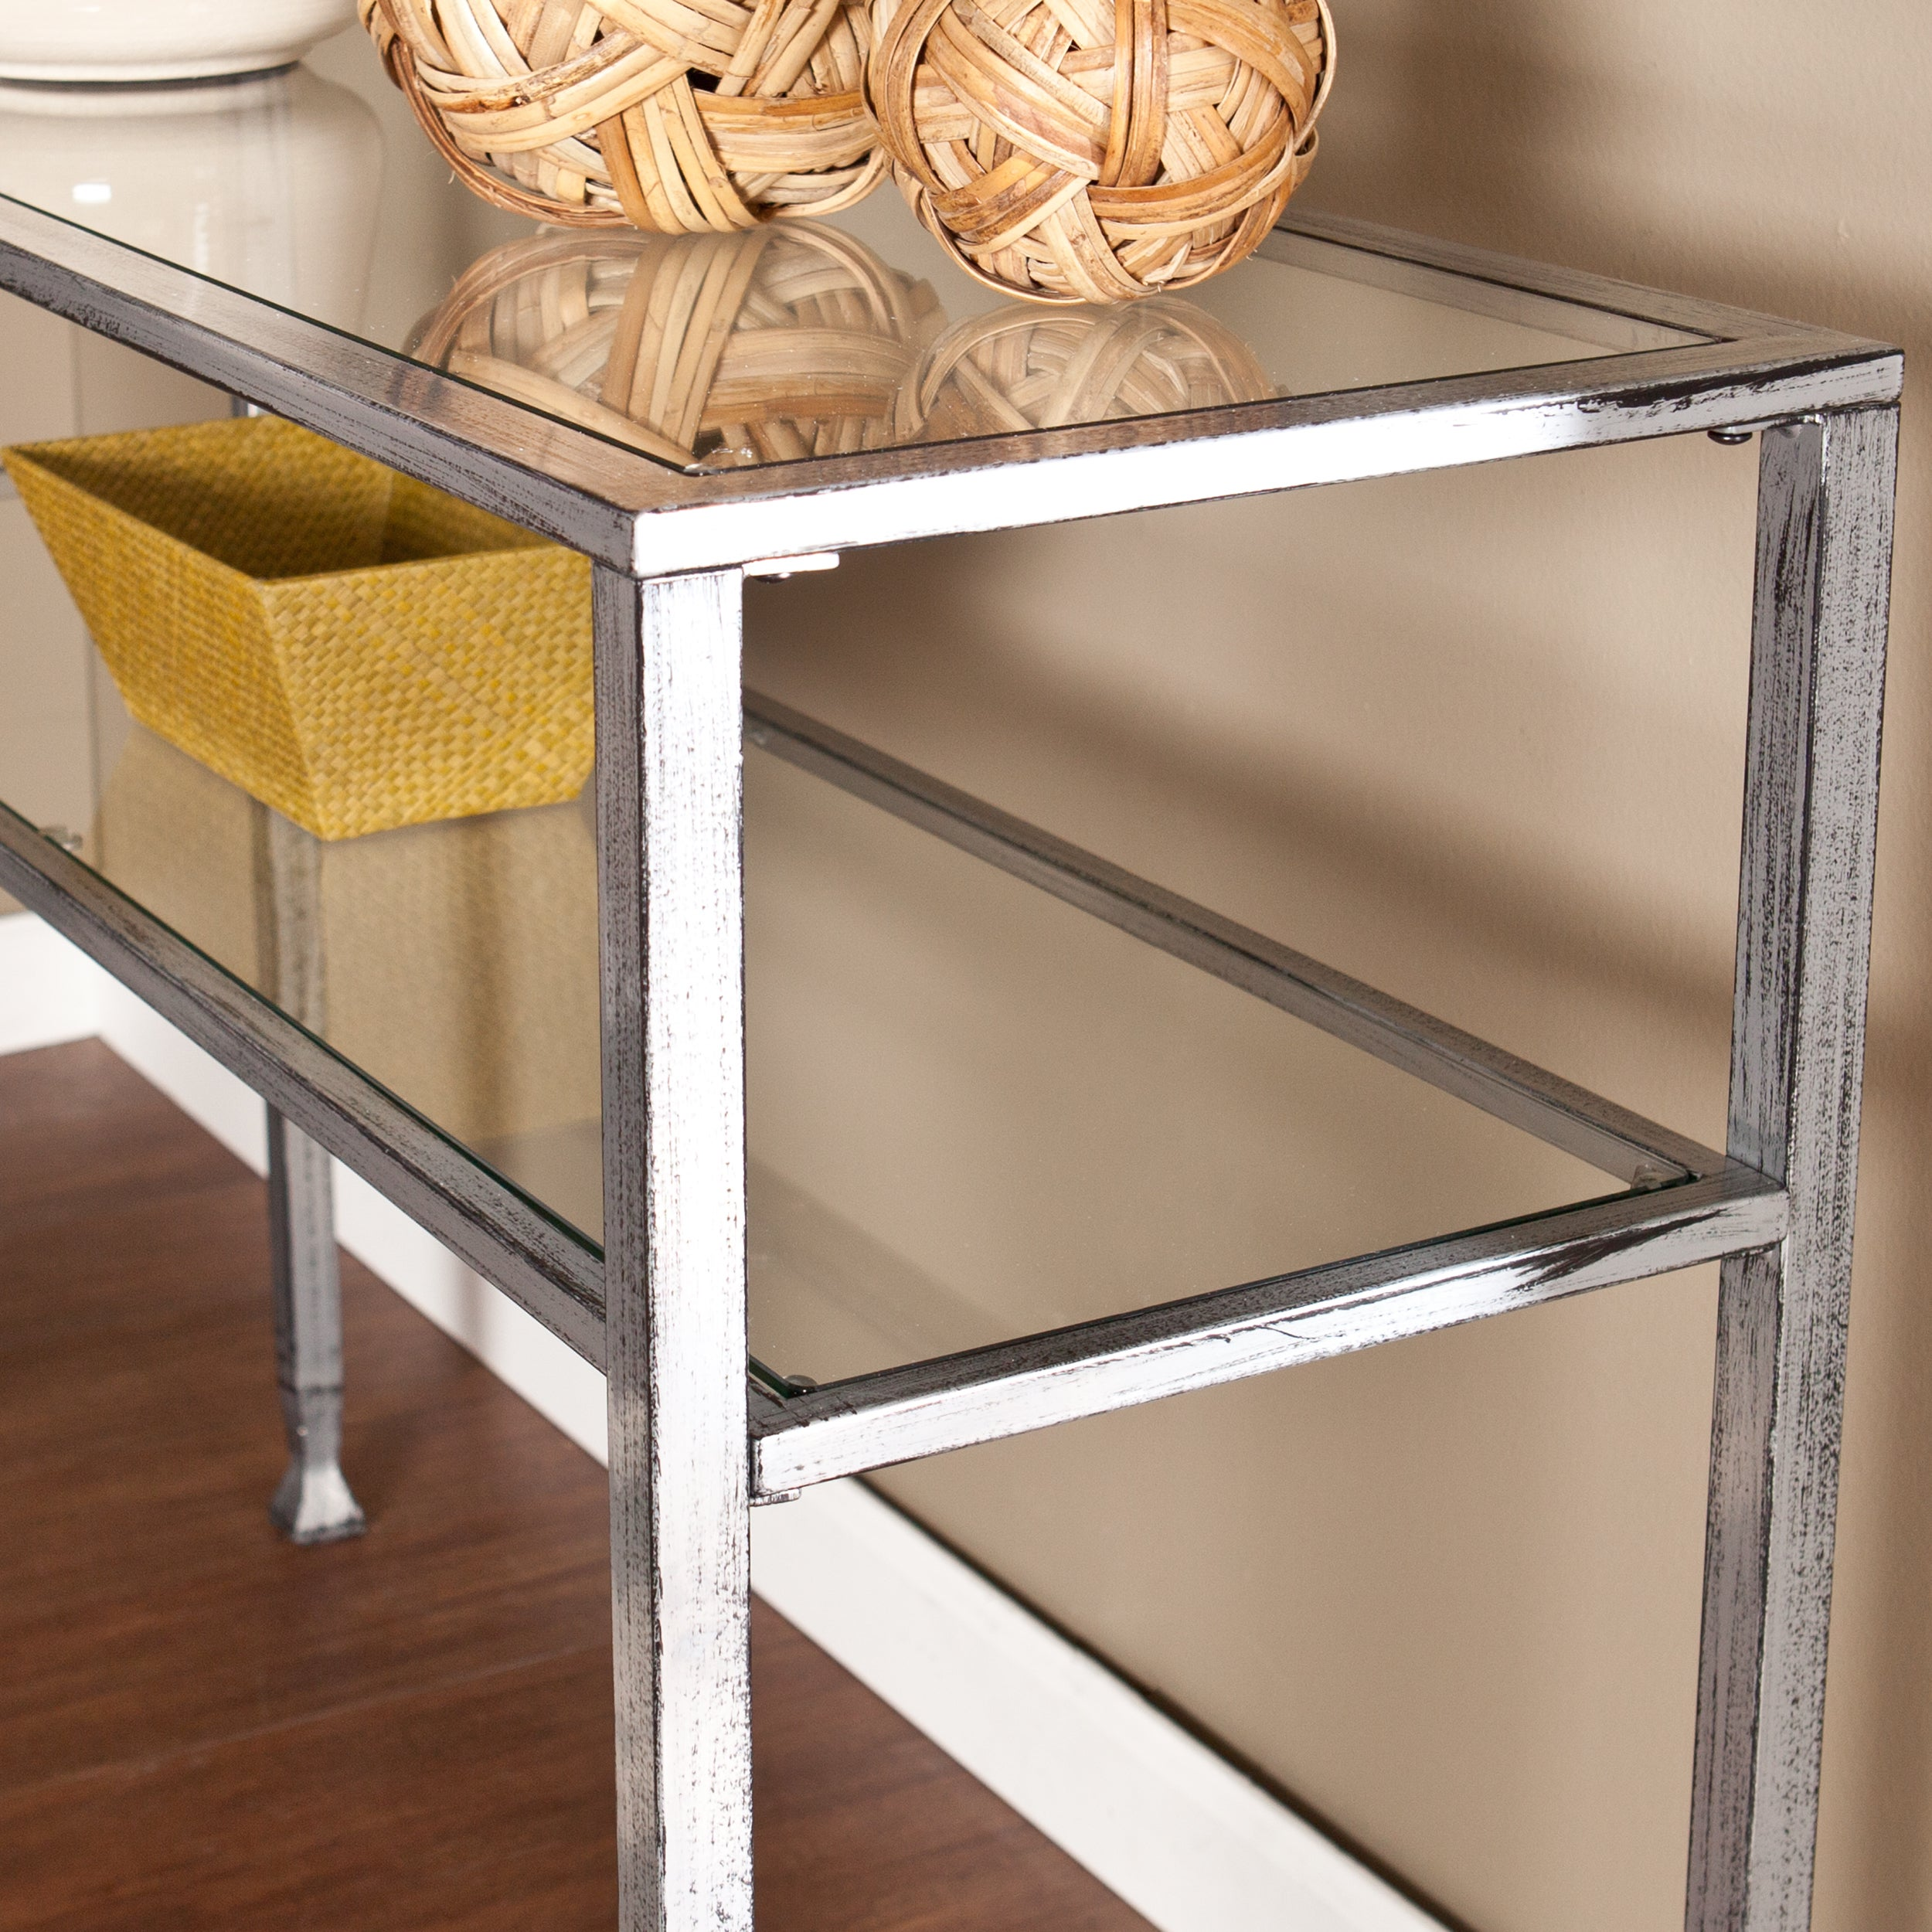 Harper Blvd Silver Metal and Glass Console Table - Free Shipping Today -  Overstock.com - 16476009